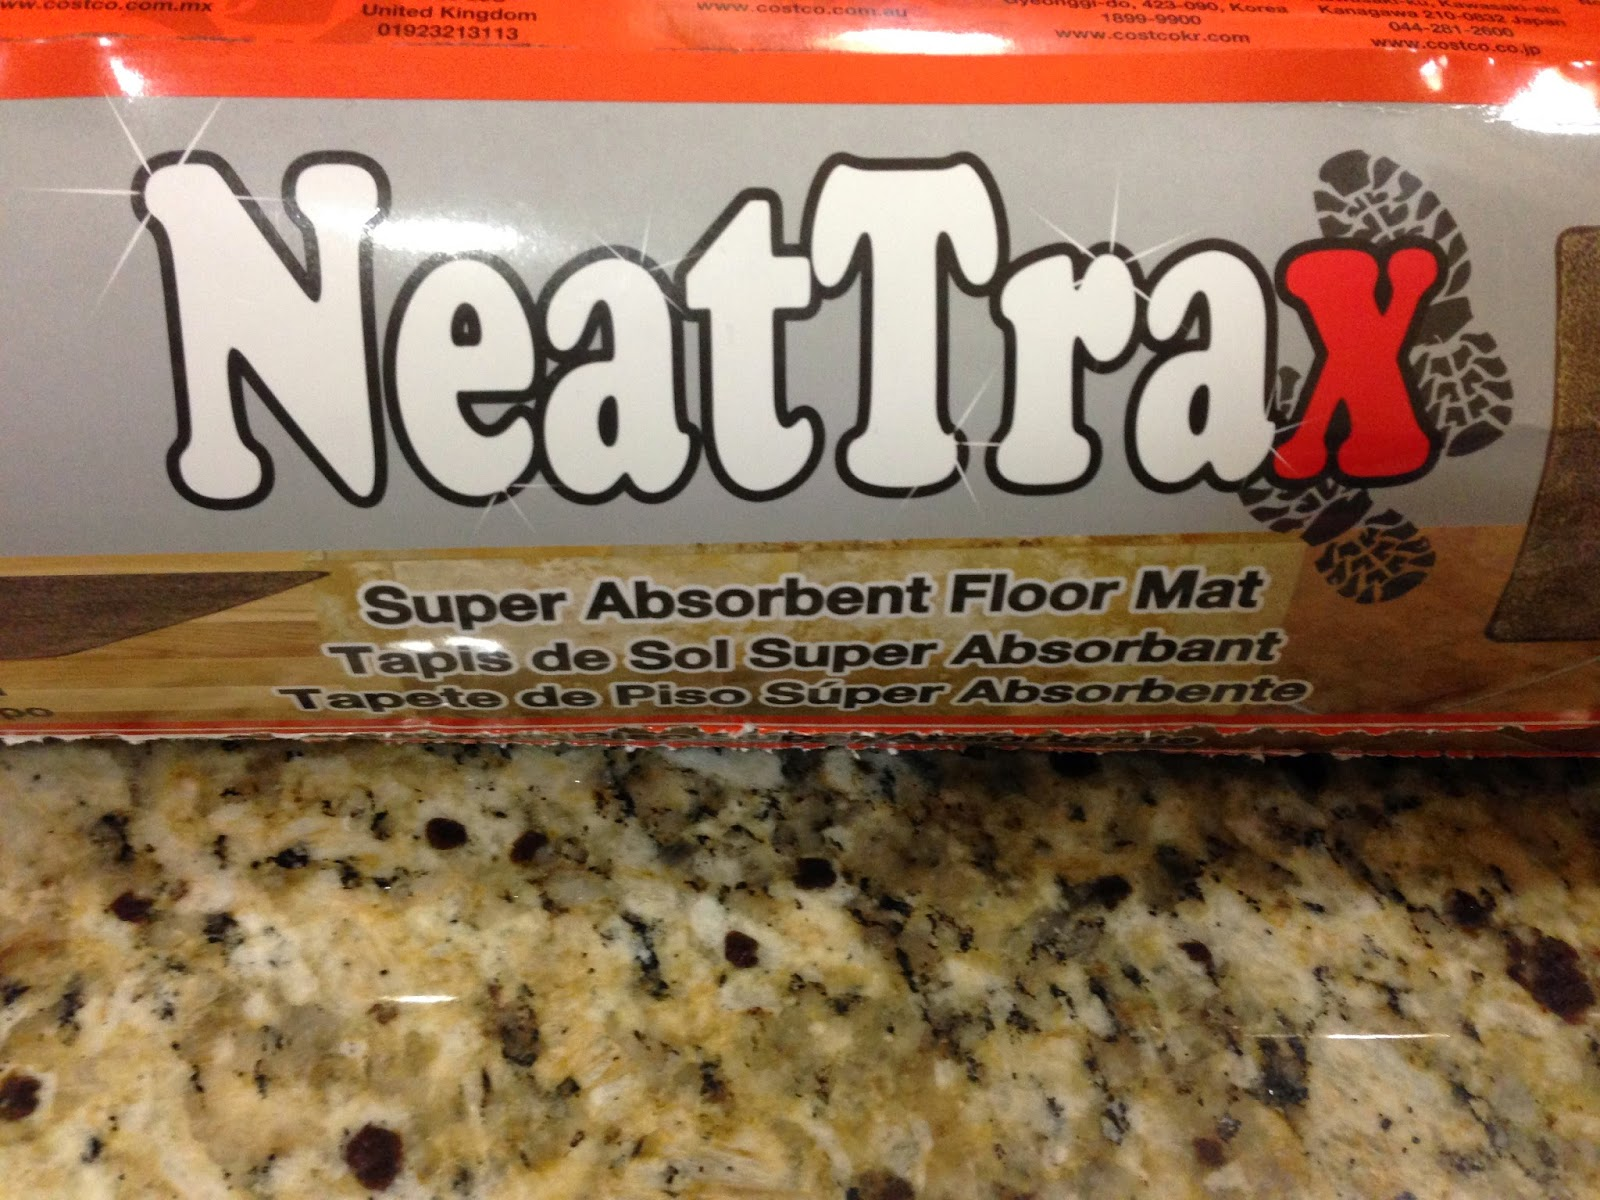 Rubber mats costco - Review Of Neattrax Super Absorbent Floor Mat From Costco